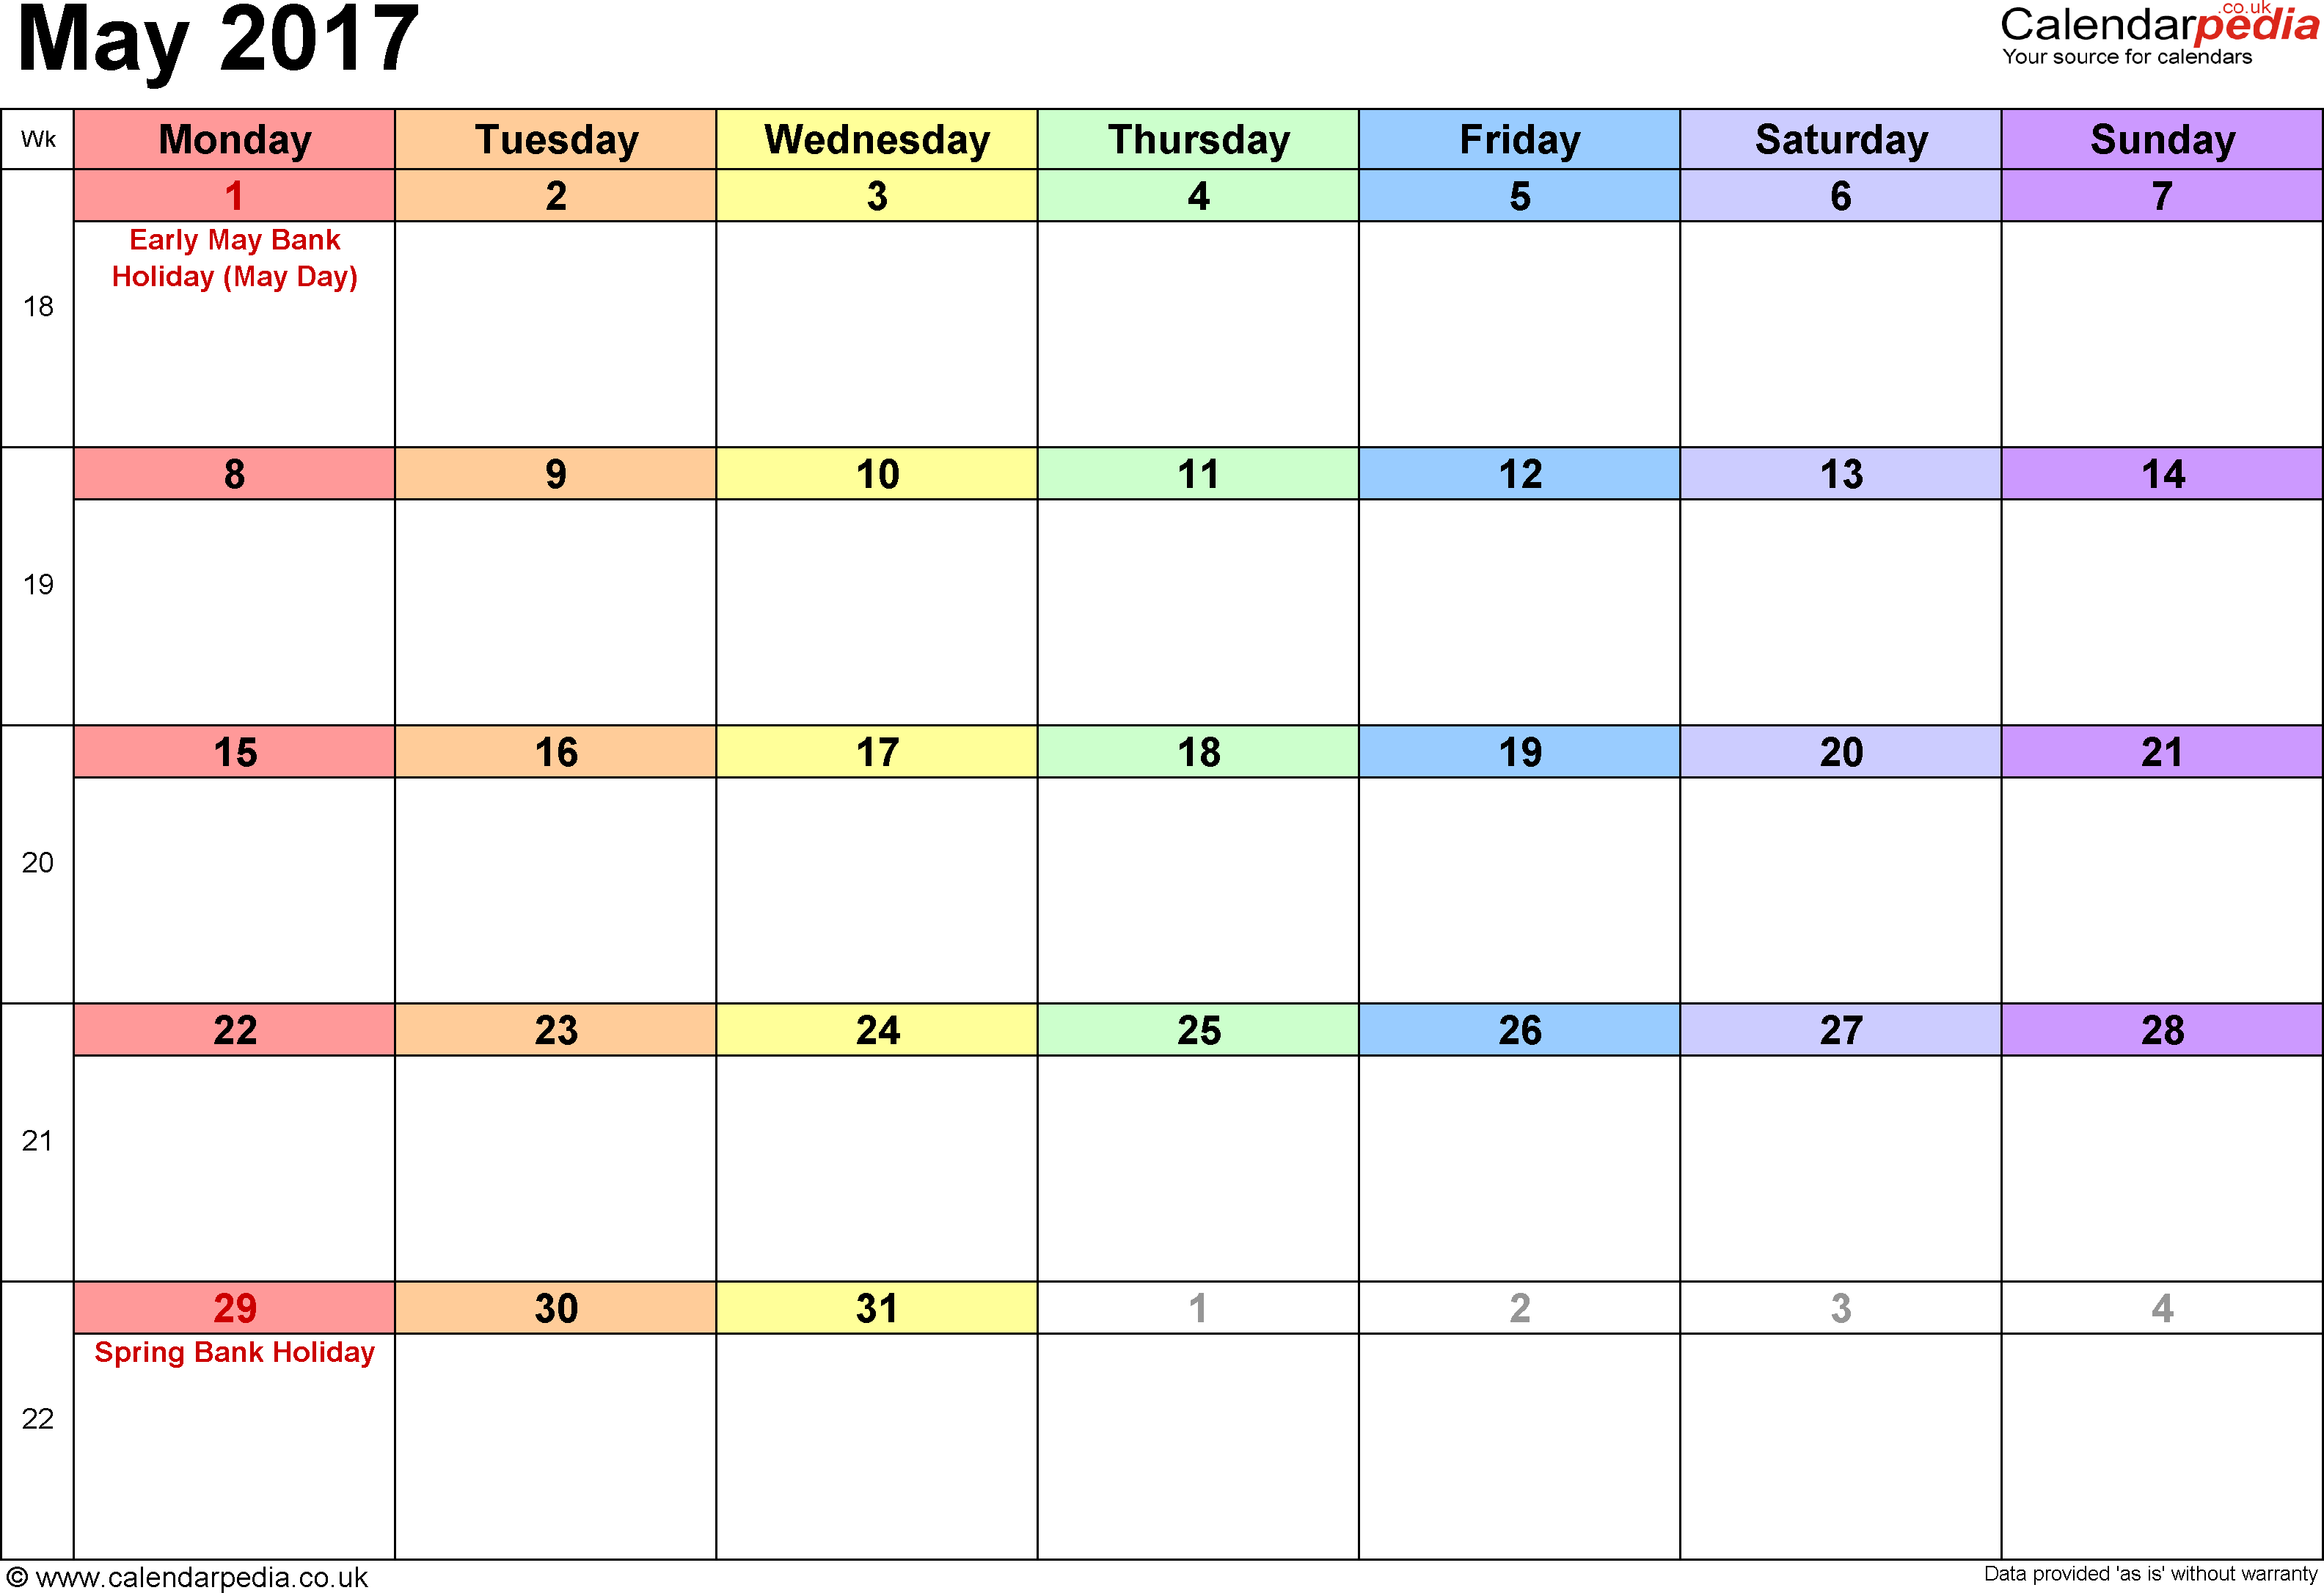 Calendar May 2017, landscape orientation, 1 page, with UK bank holidays and week numbers